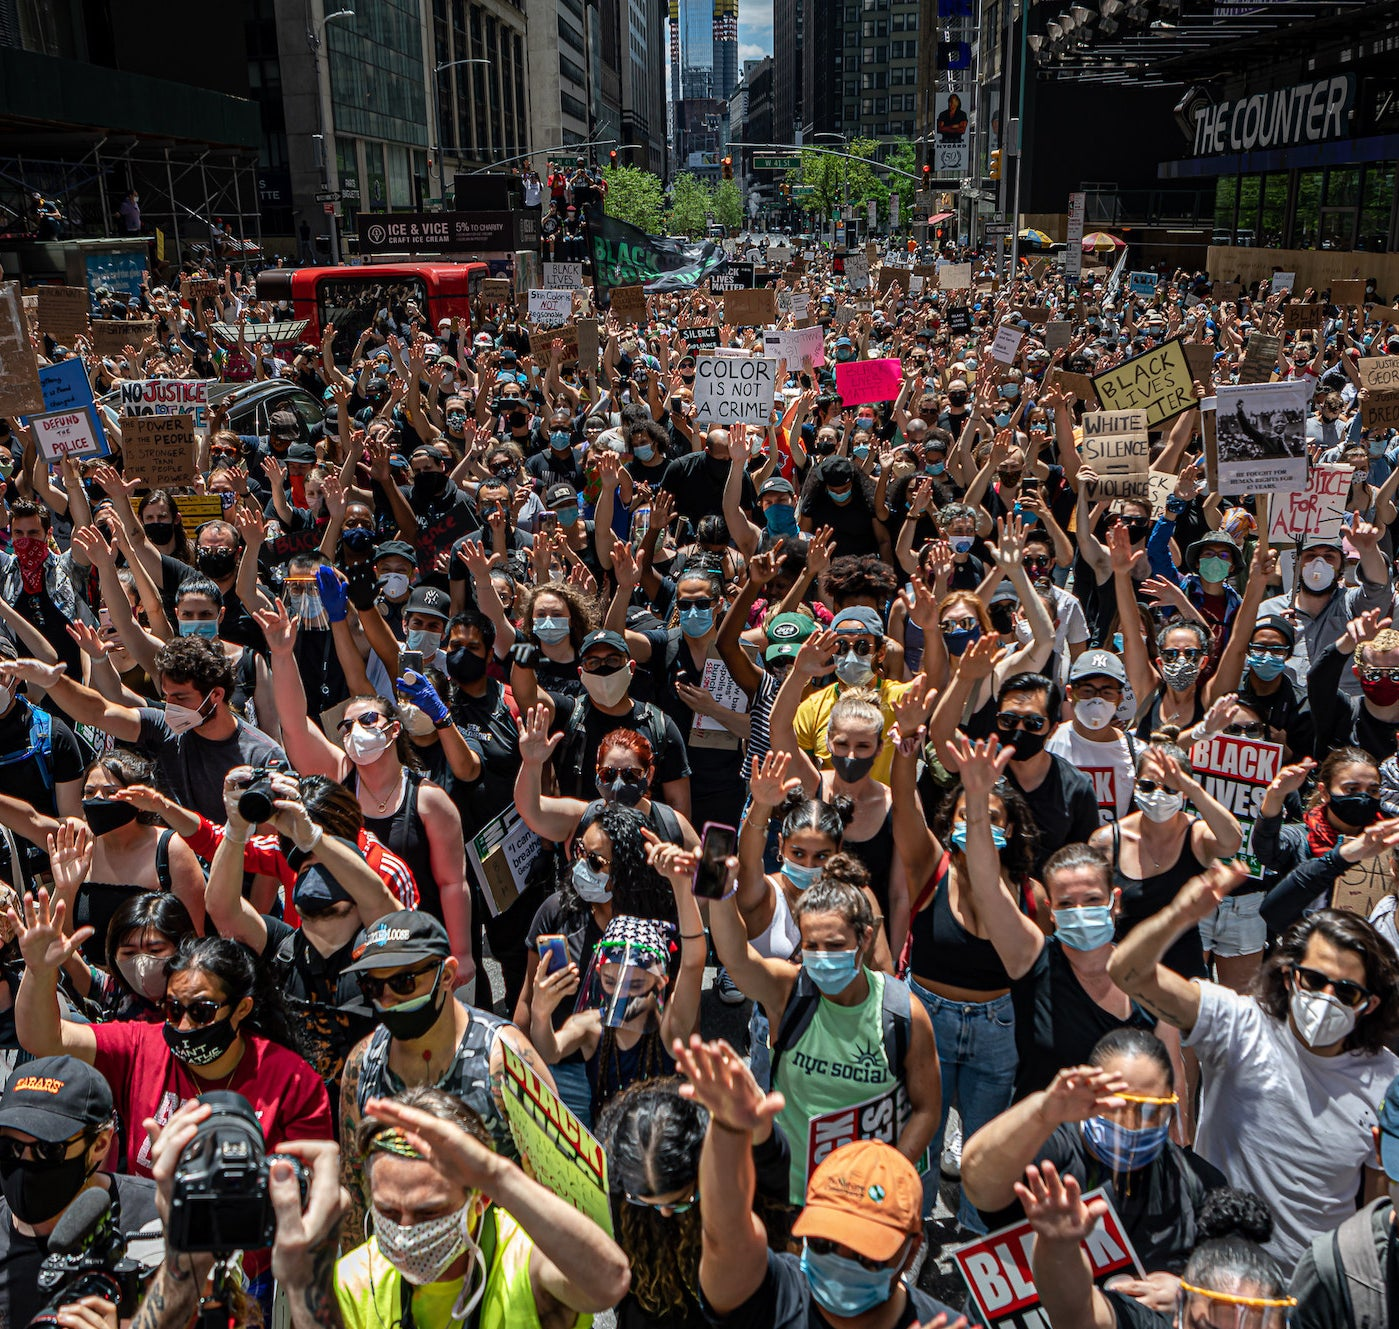 A crowd of Black Lives Matter protestors in New York's Time Square